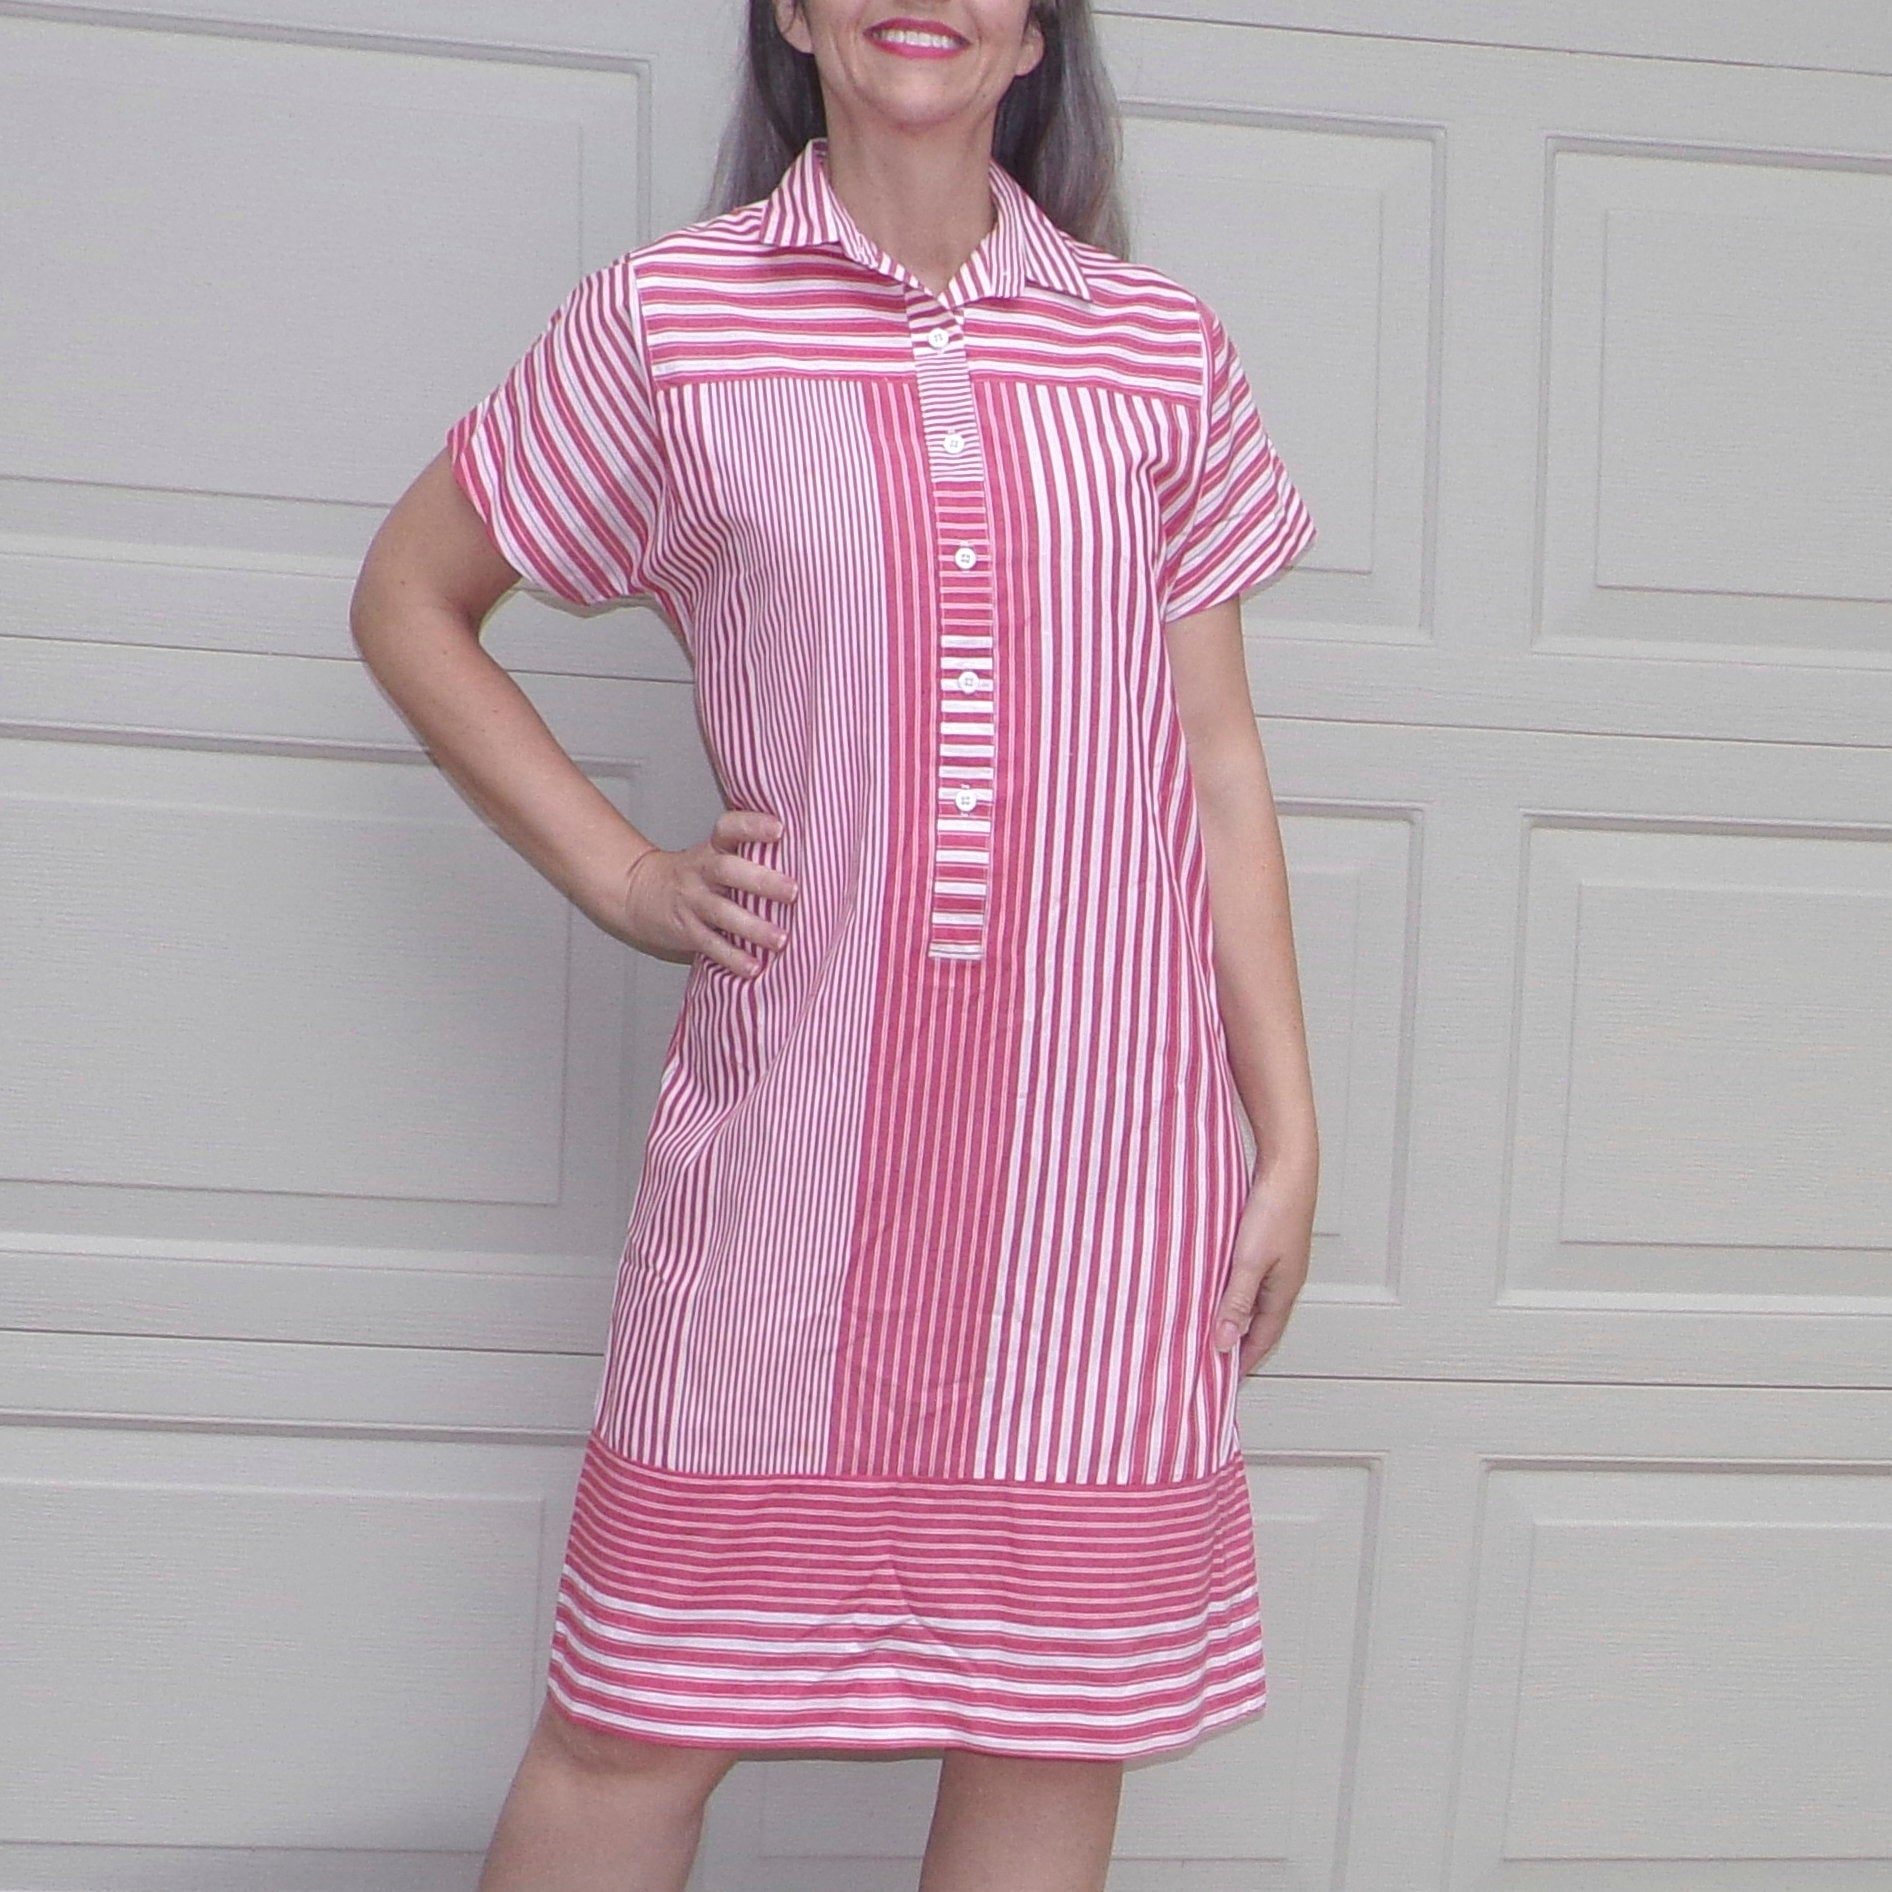 RED CHAMBRAY STRIPE 1980's shift shirt dress S M (A2)